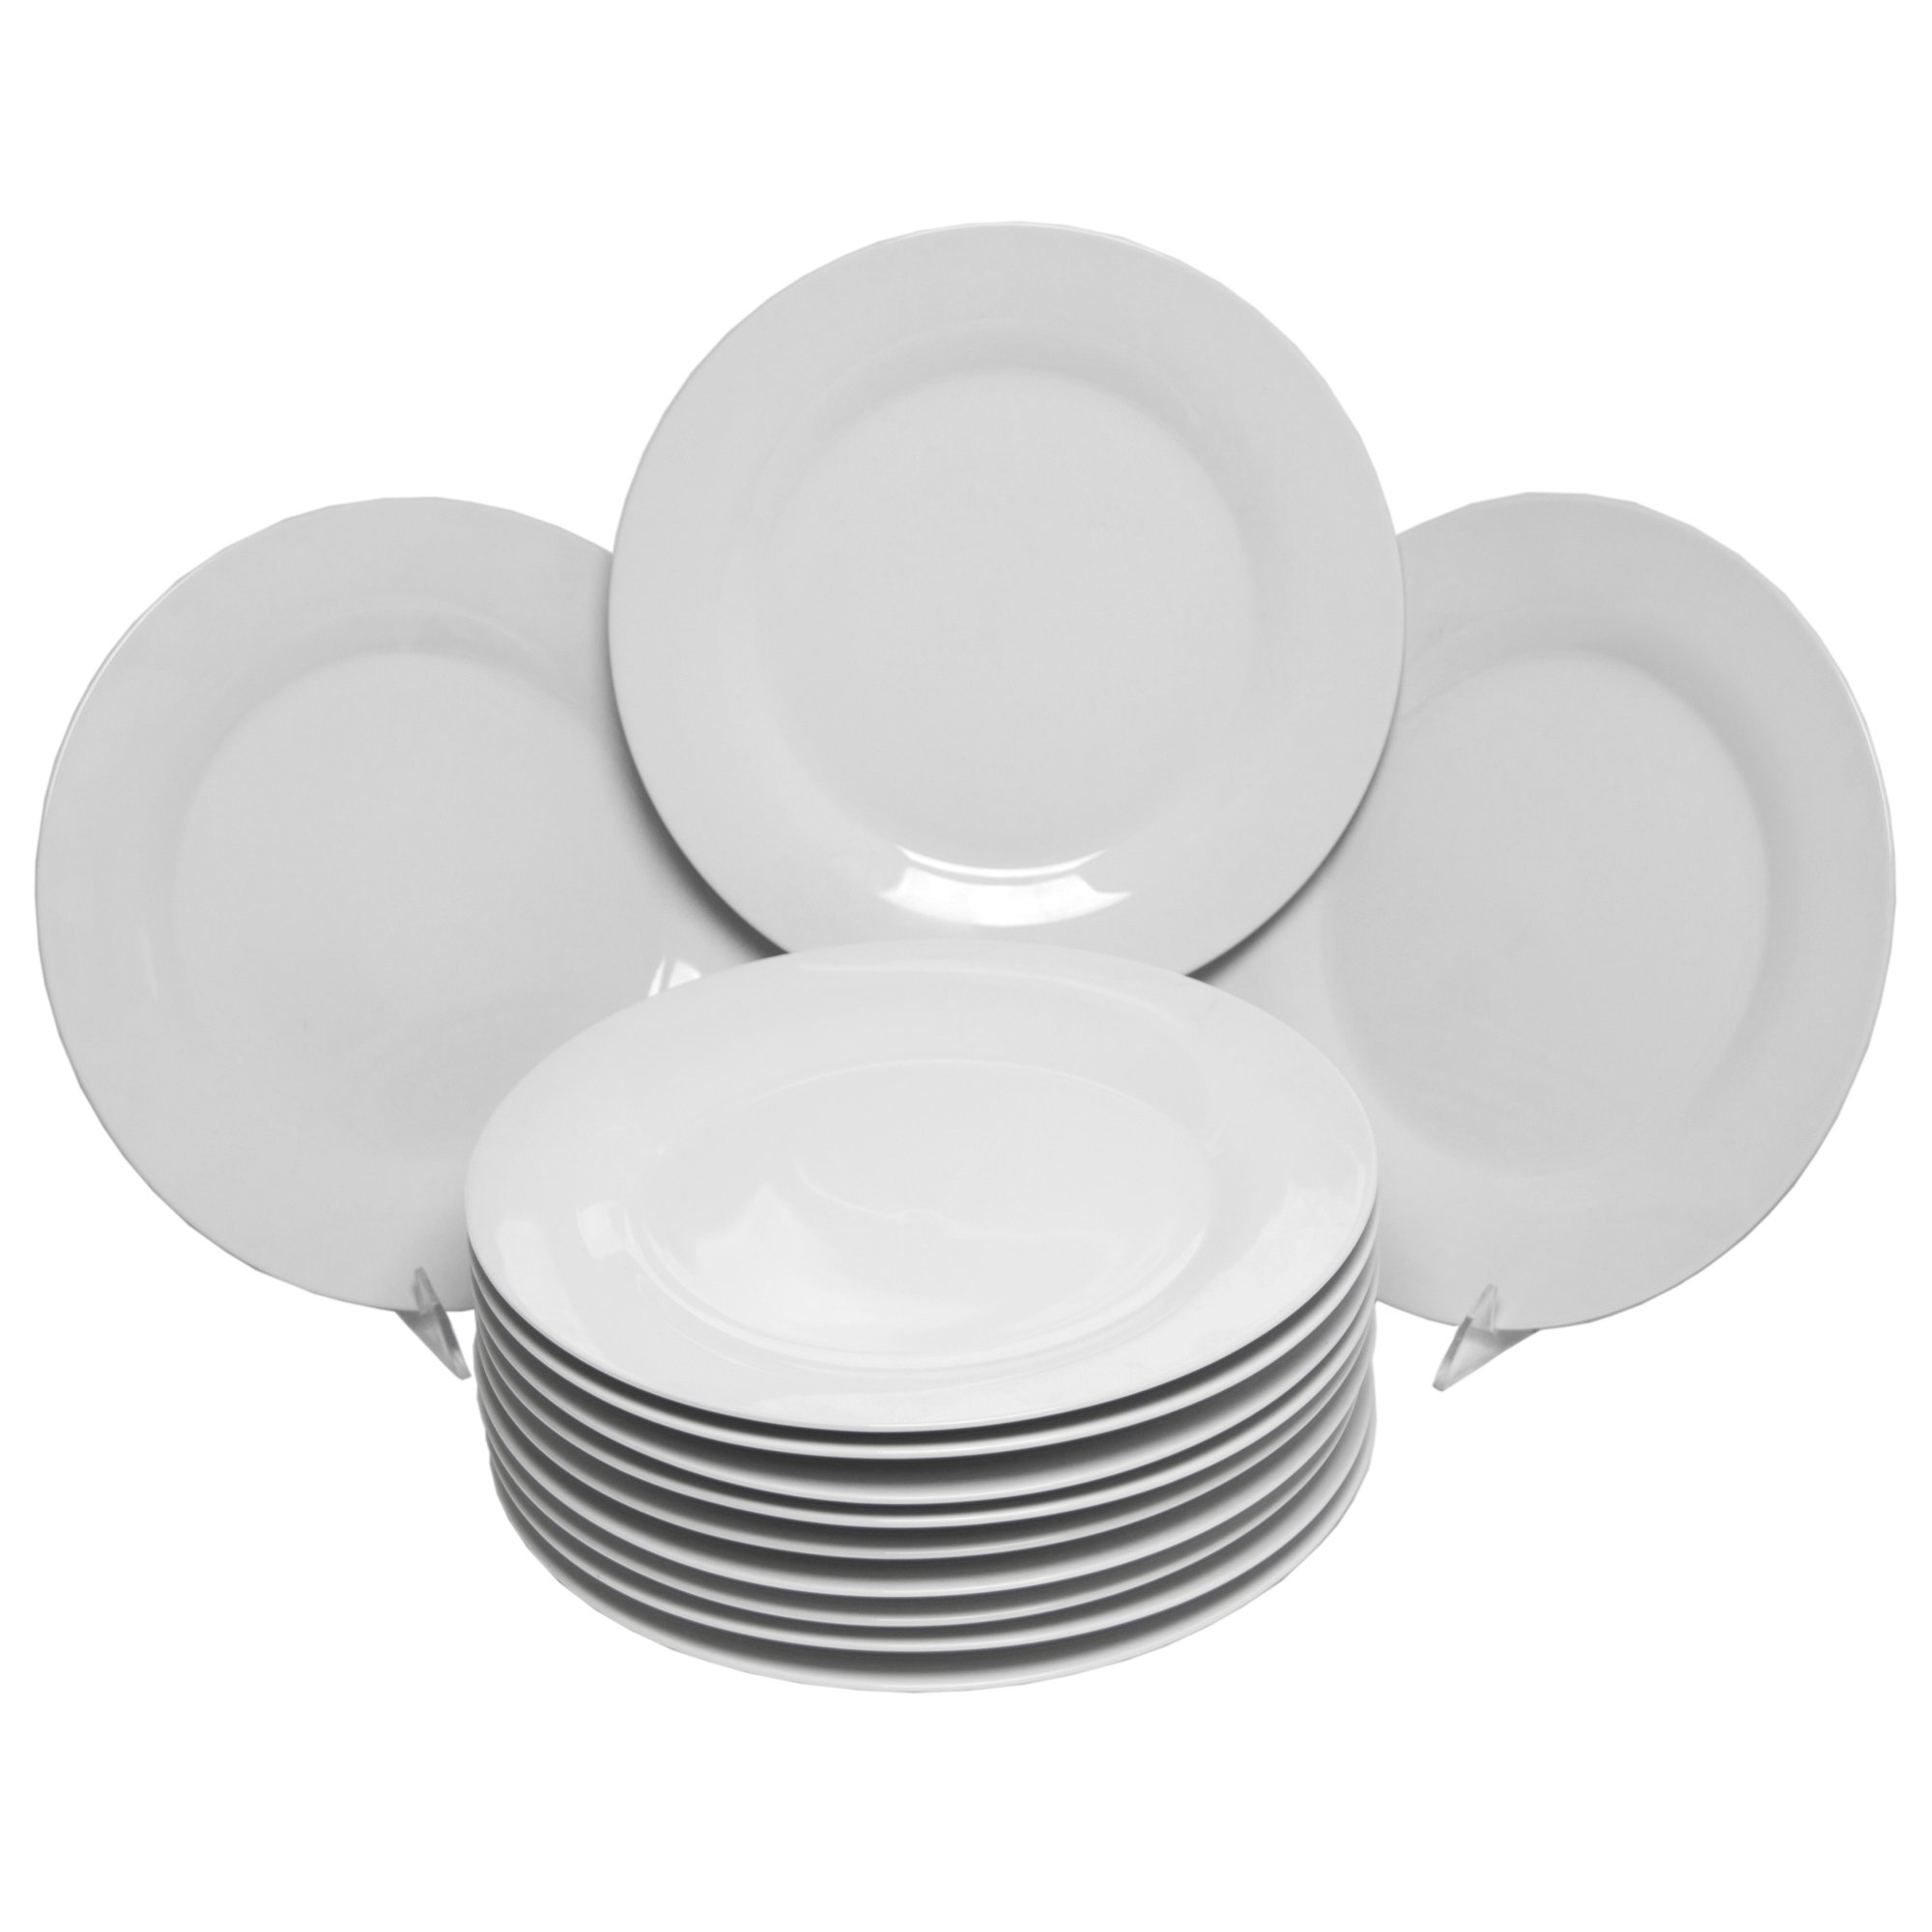 10 Strawberry Street Catering Set 10-1/2-Inch Dinner Plate, Set of 12 by 10 Strawberry Street (Image #1)